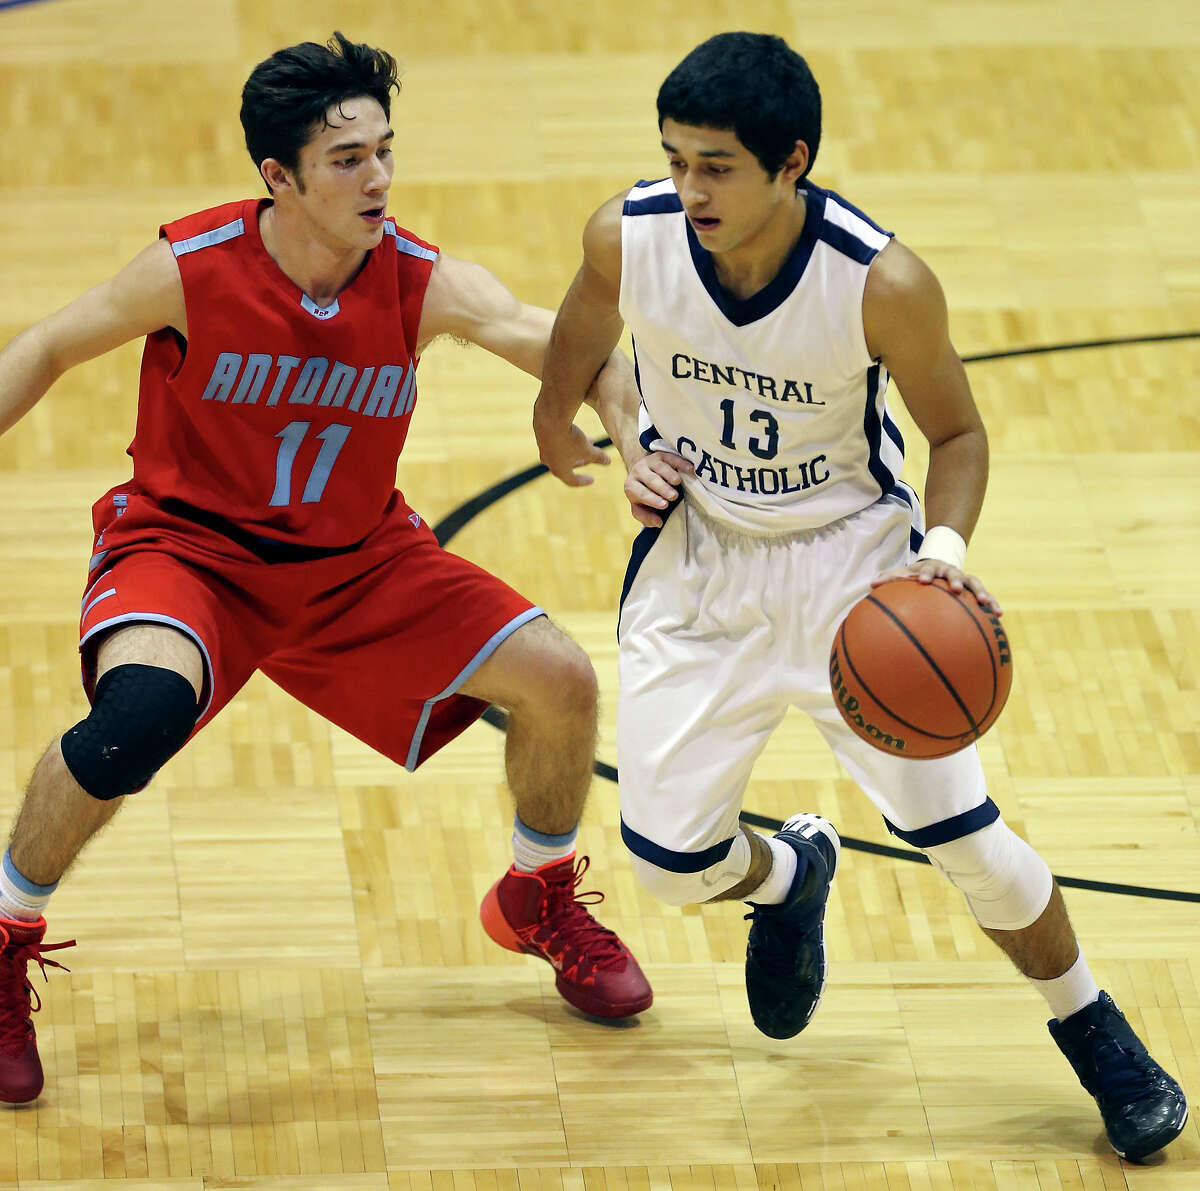 Central Catholic's Paul Escobar looks for room around Antonian's Alec Boggess during first half action Friday Jan. 24, 2014 at Greehey Arena on the St. Mary's University campus.